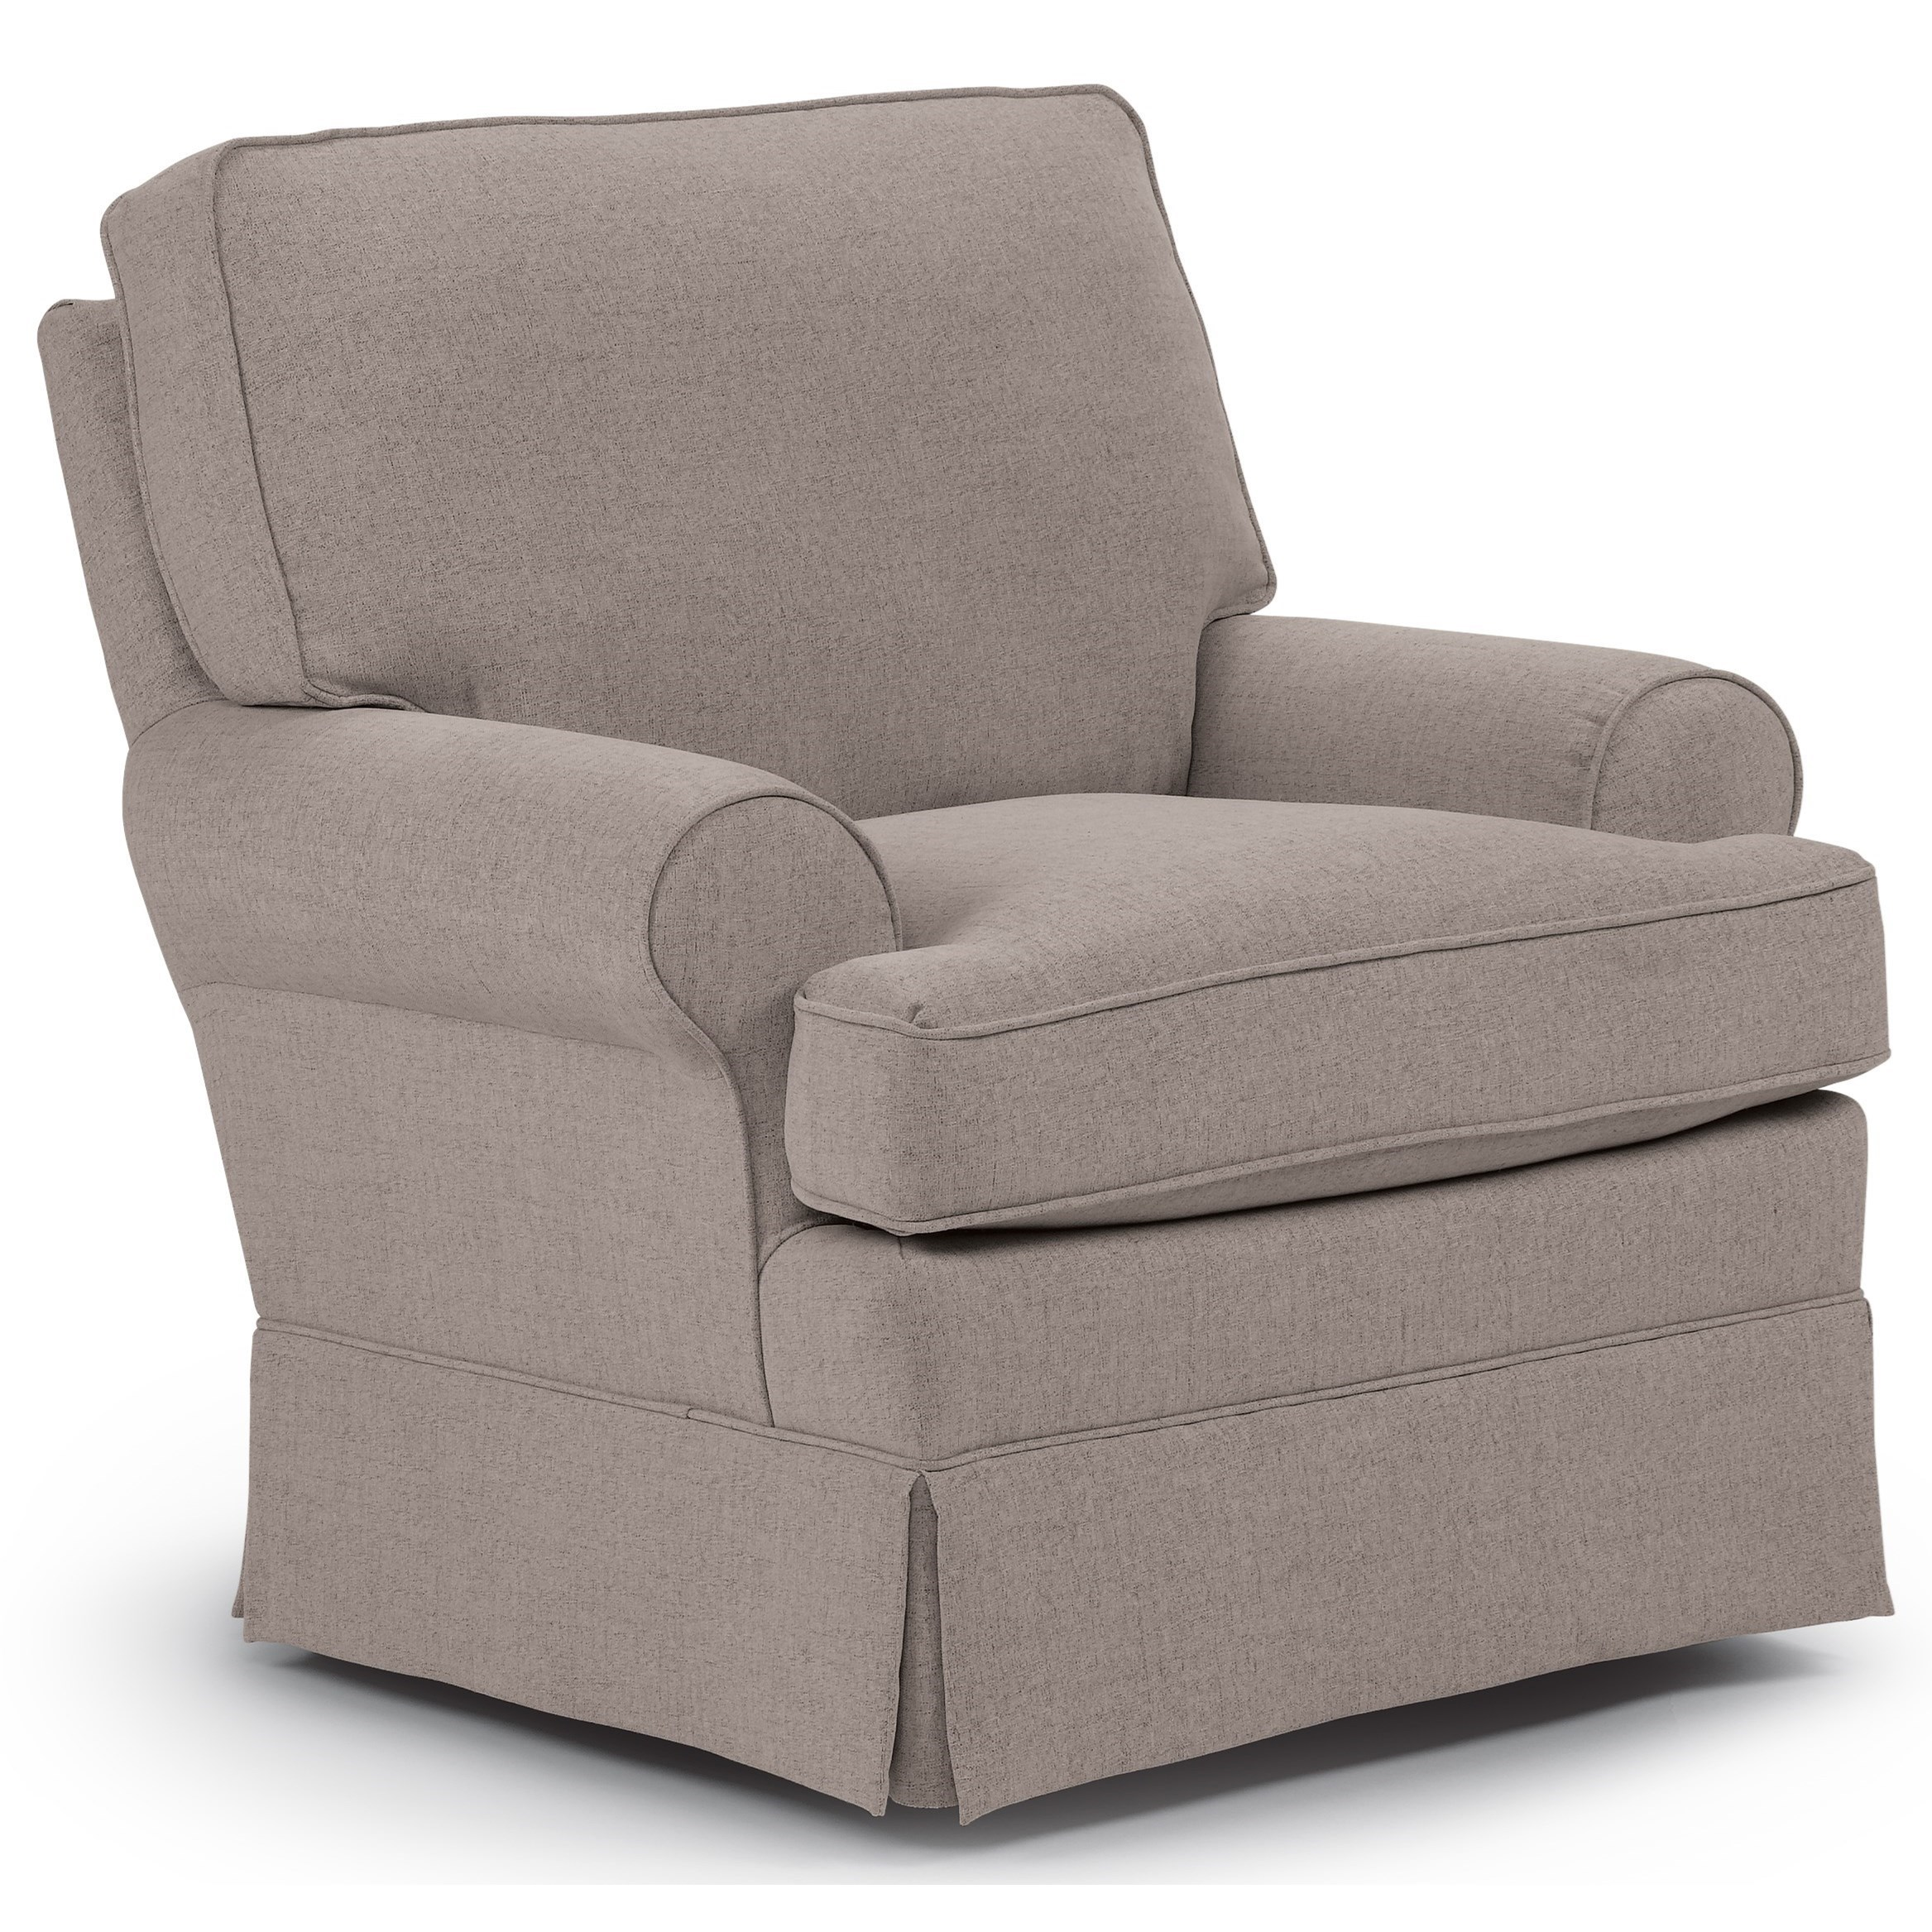 Studio 47 Chairs   Swivel GlideSwivel Glider Chair With Welt Cord Trim